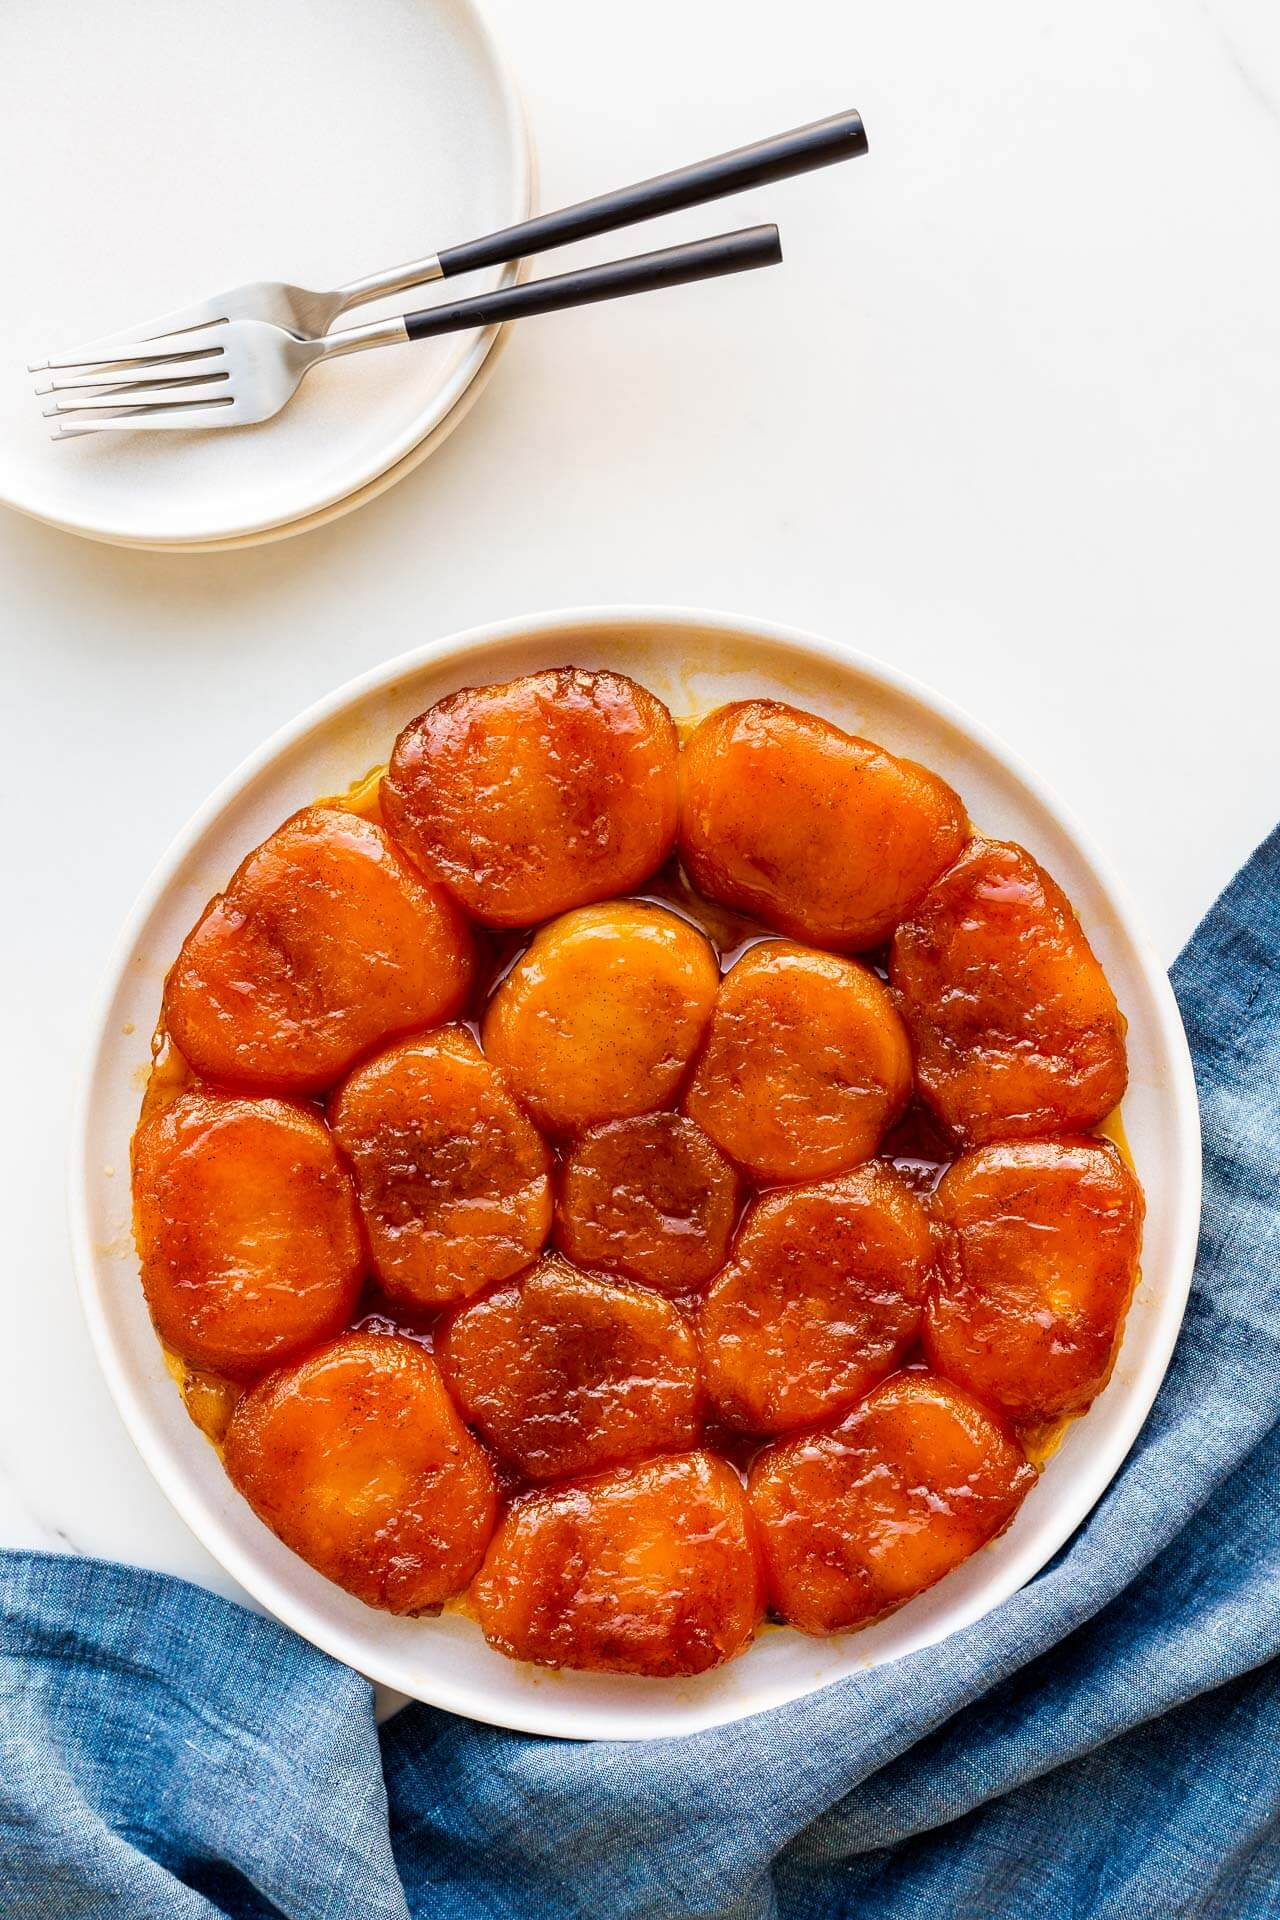 French apple tarte tatin warm from the oven and ready to serve.